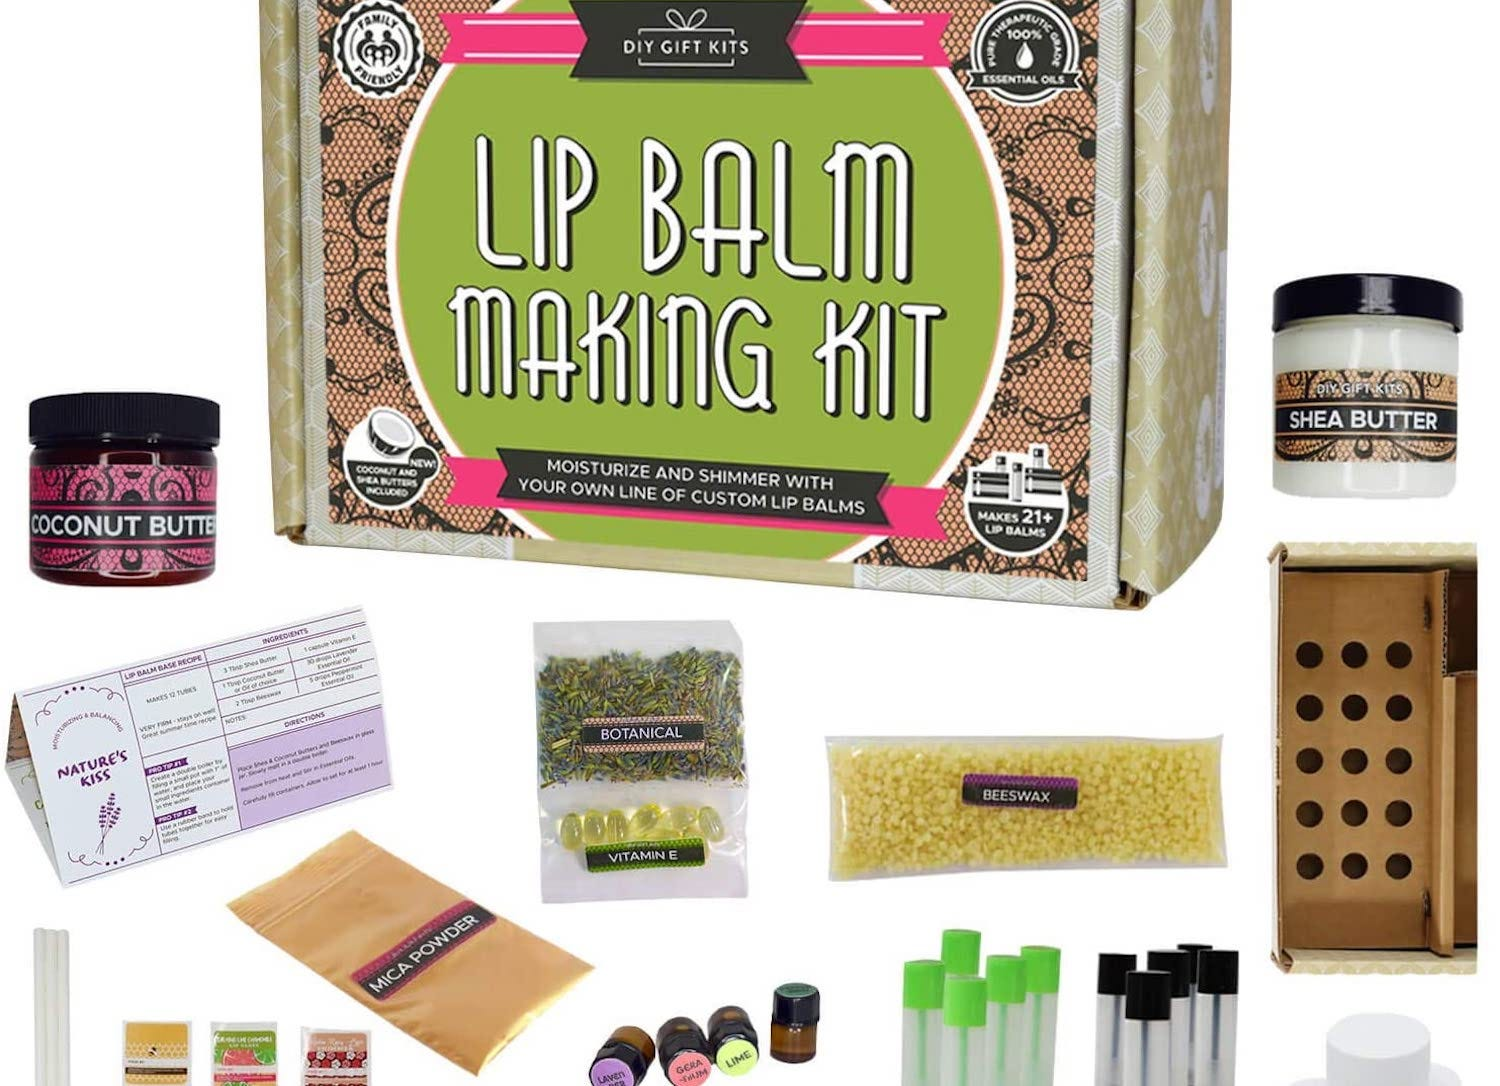 A lip balm DIY kit with ingredients in bags and bottles